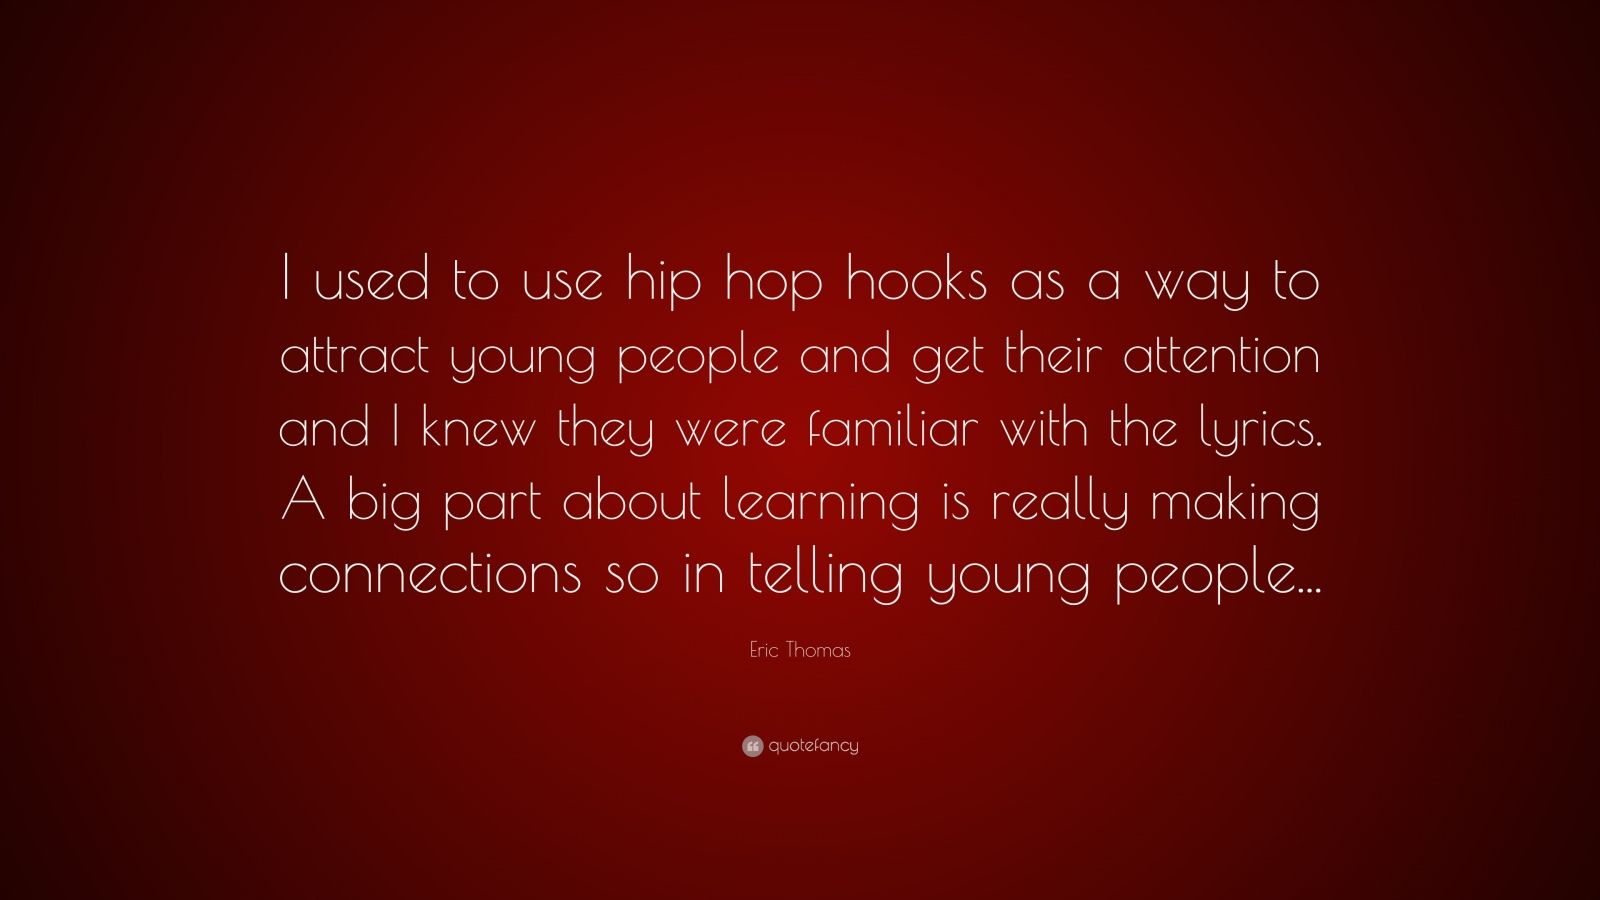 """Eric Thomas Quote: """"I used to use hip hop hooks as a way to attract young people and get their attention and I knew they were familiar with the lyrics. A big part about learning is really making connections so in telling young people..."""""""